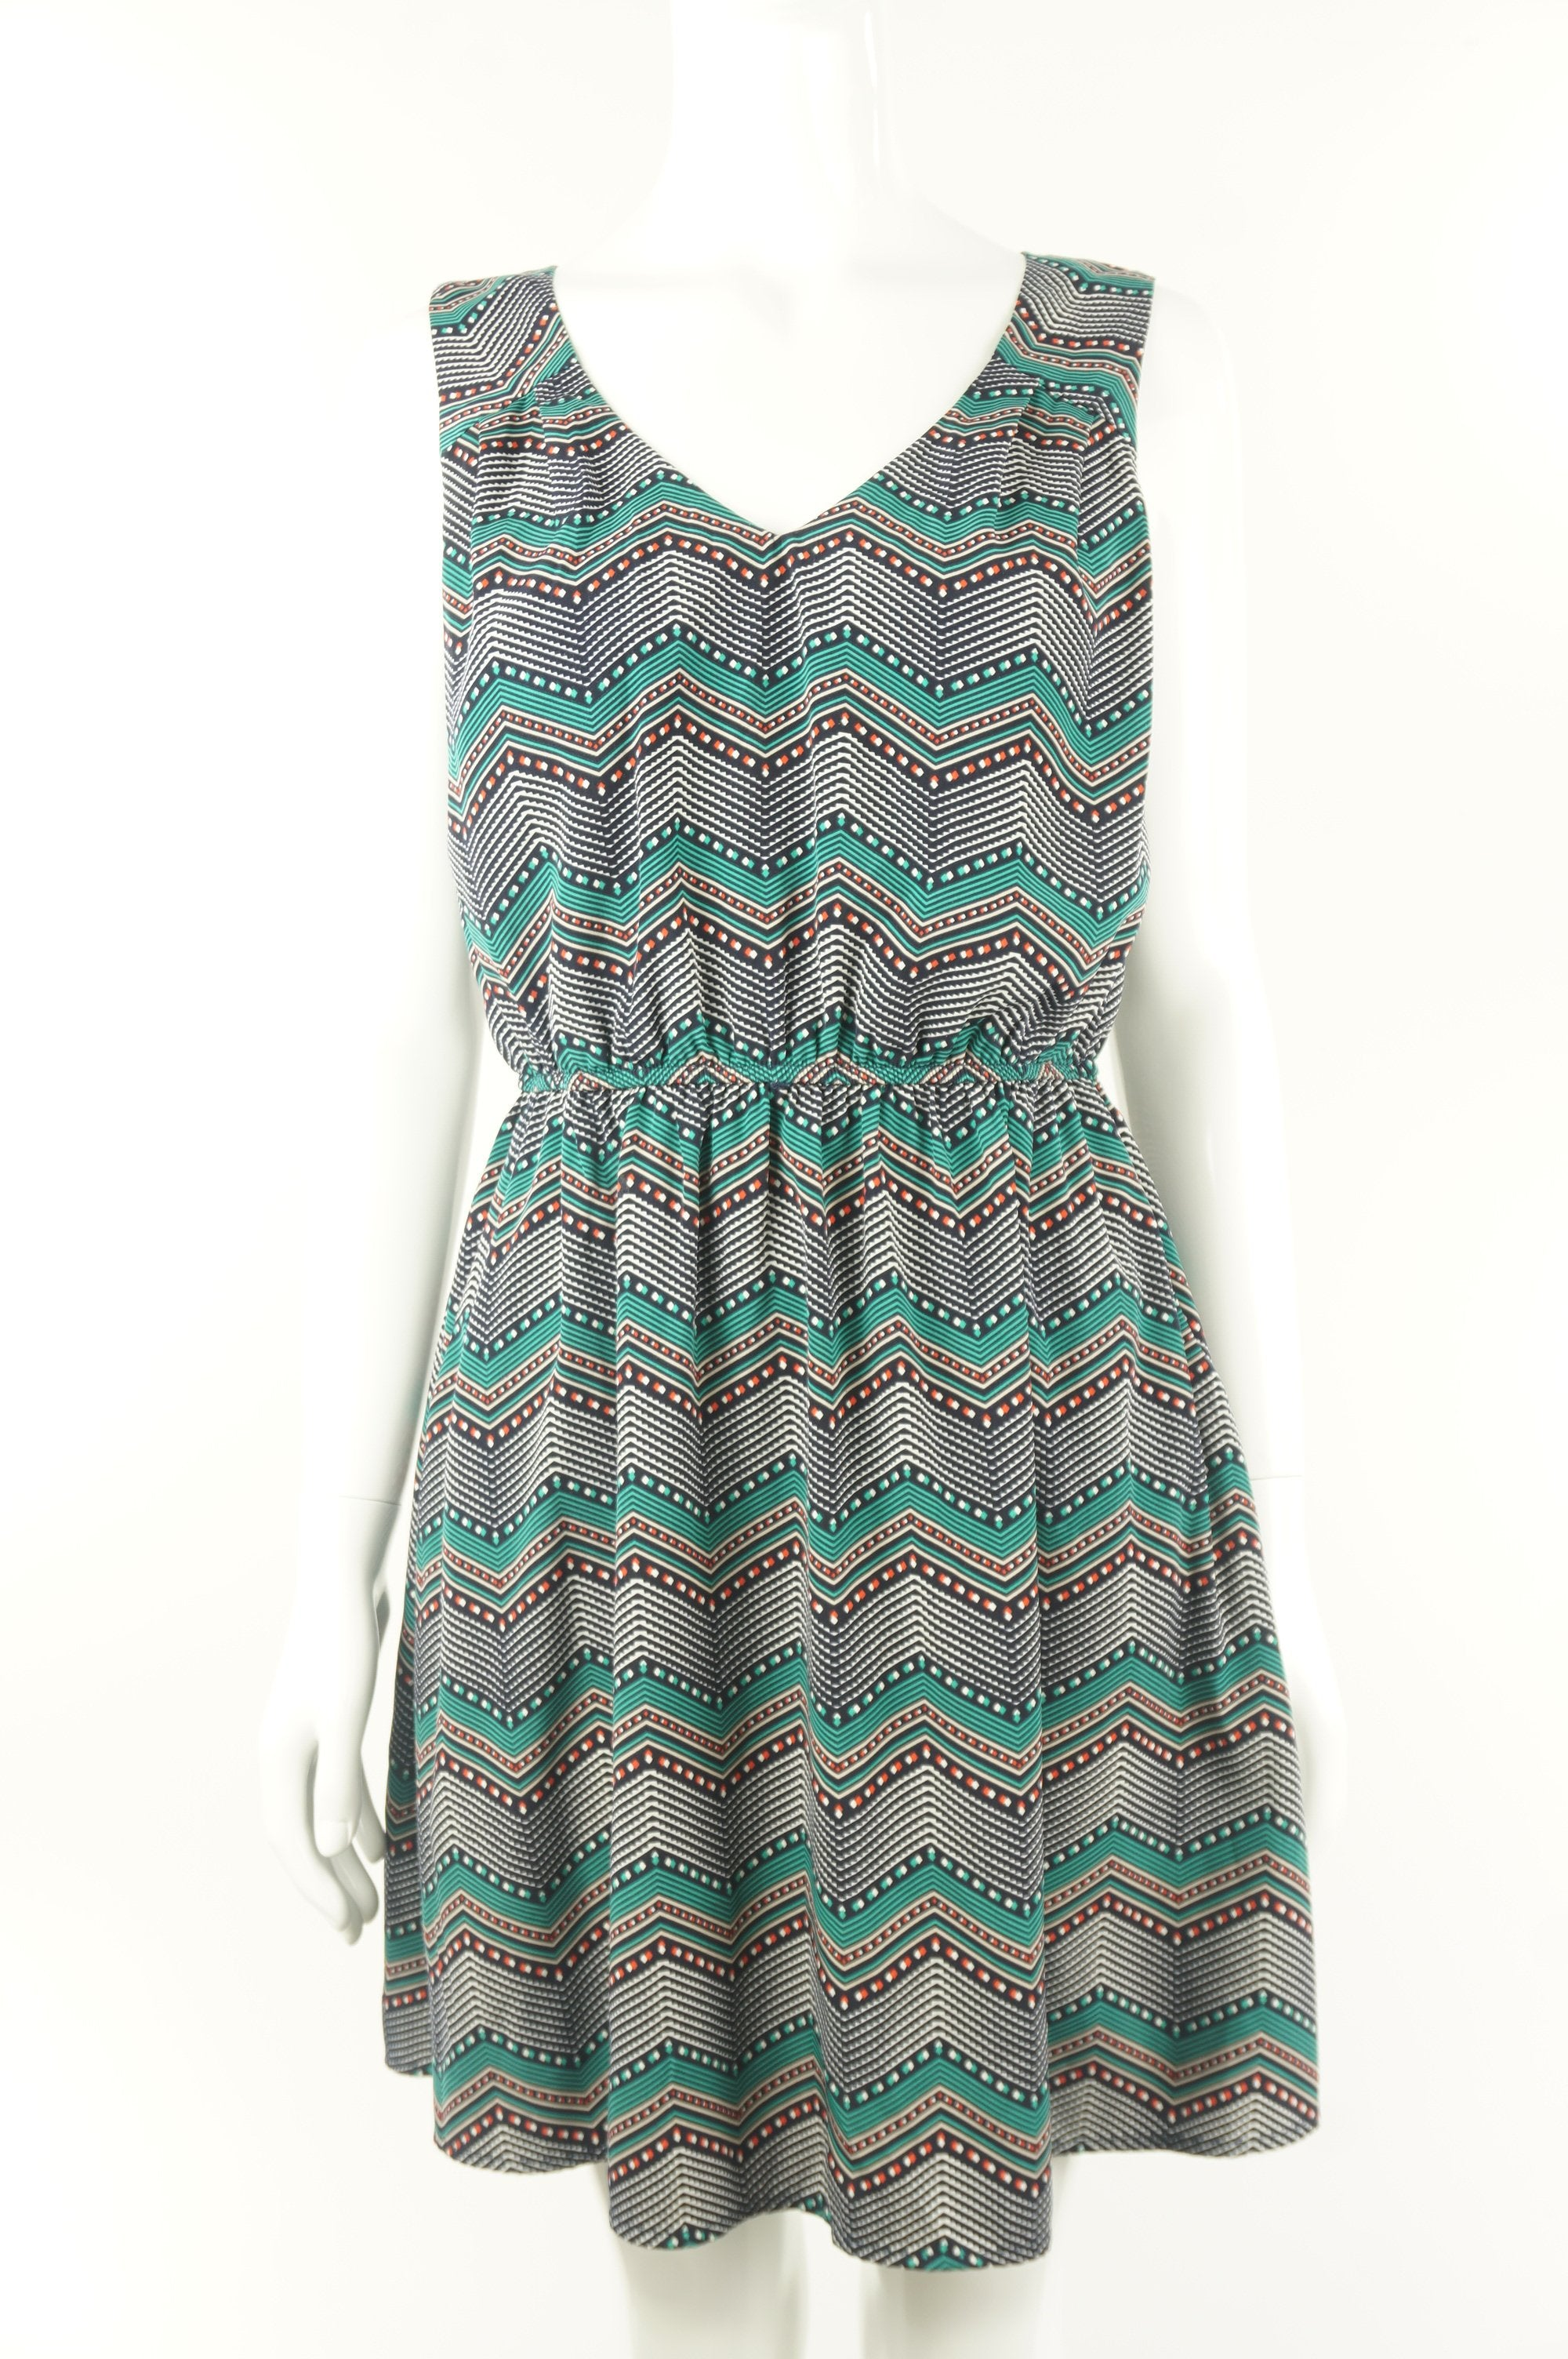 Amy Byer Chevron Midi Dress, Cute chevron pattern sleeveless dress with cutout design on back.  For the vibrant you and a vibrant summer day., Green, Blue, 100% polyester, women's Dresses & Rompers, women's Green, Blue Dresses & Rompers, Amy Byer women's Dresses & Rompers, women's midi dress with open back and zigzag patterns, women's sleeveless dress with open back zig zag patterns